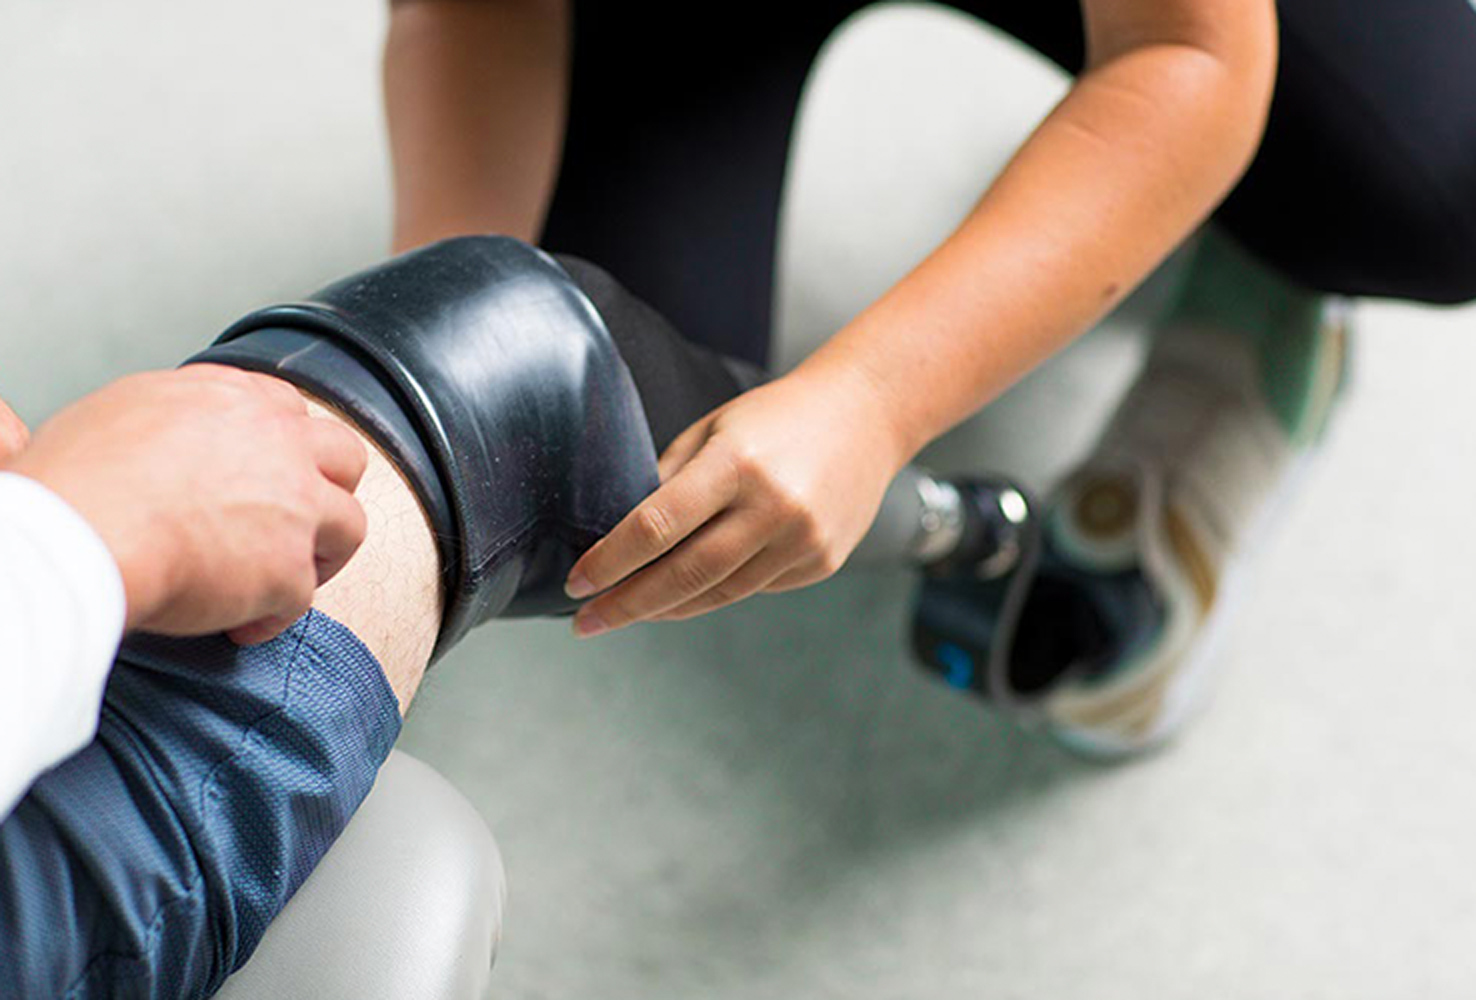 psychical therapist helping patient put on prosthetic leg